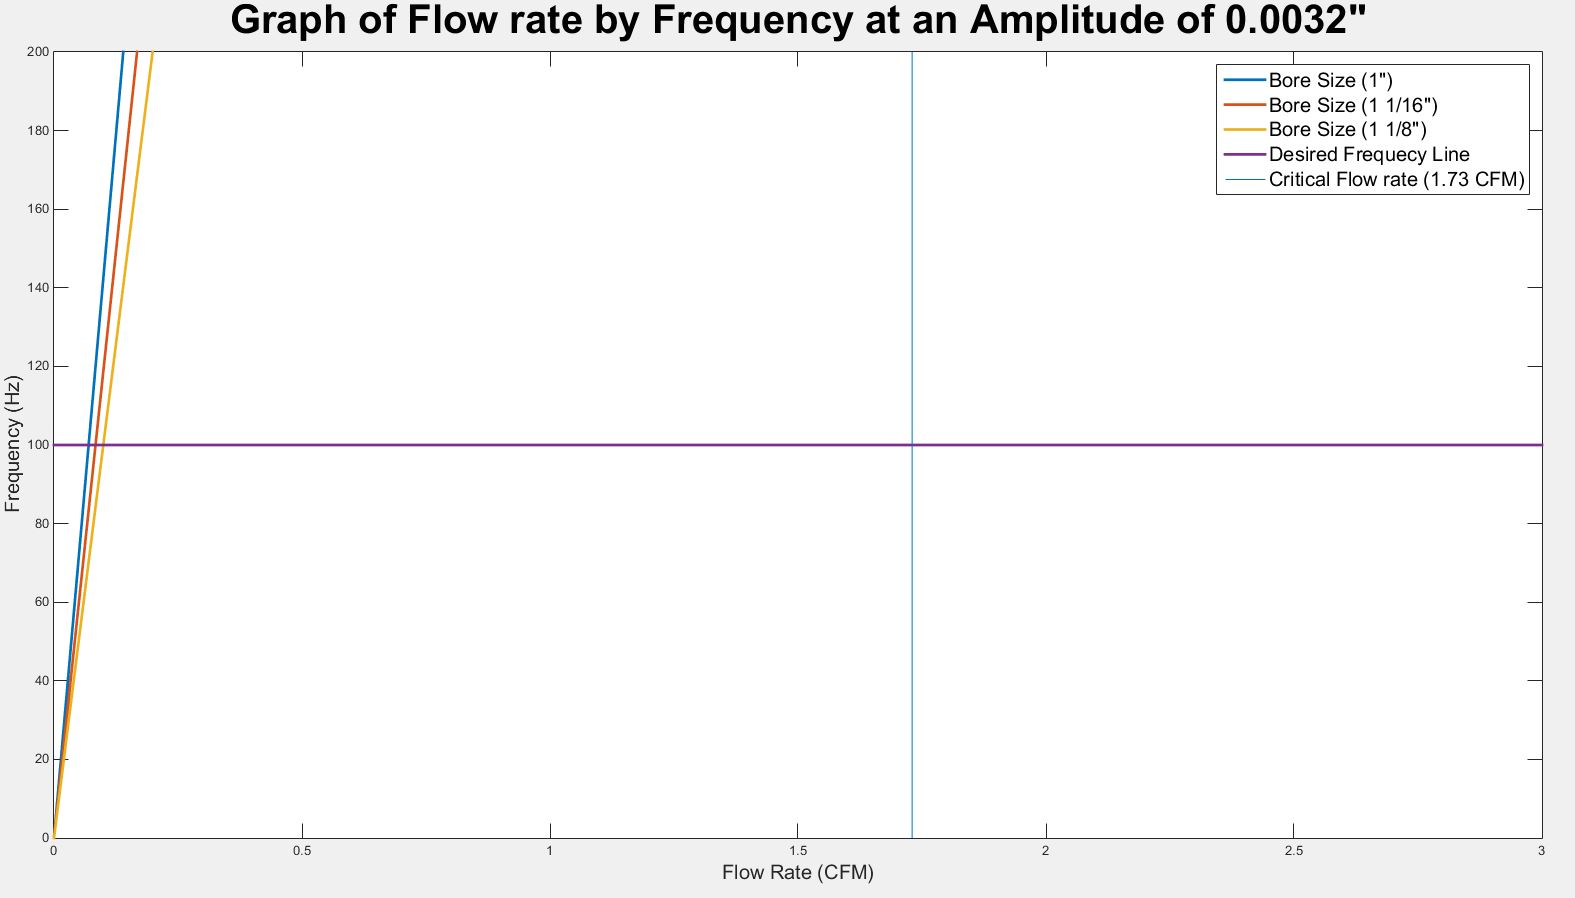 public/Preliminary Detailed Design Documents/P16103_flow rate graph_Amplitude_0.0032_zoom.JPG